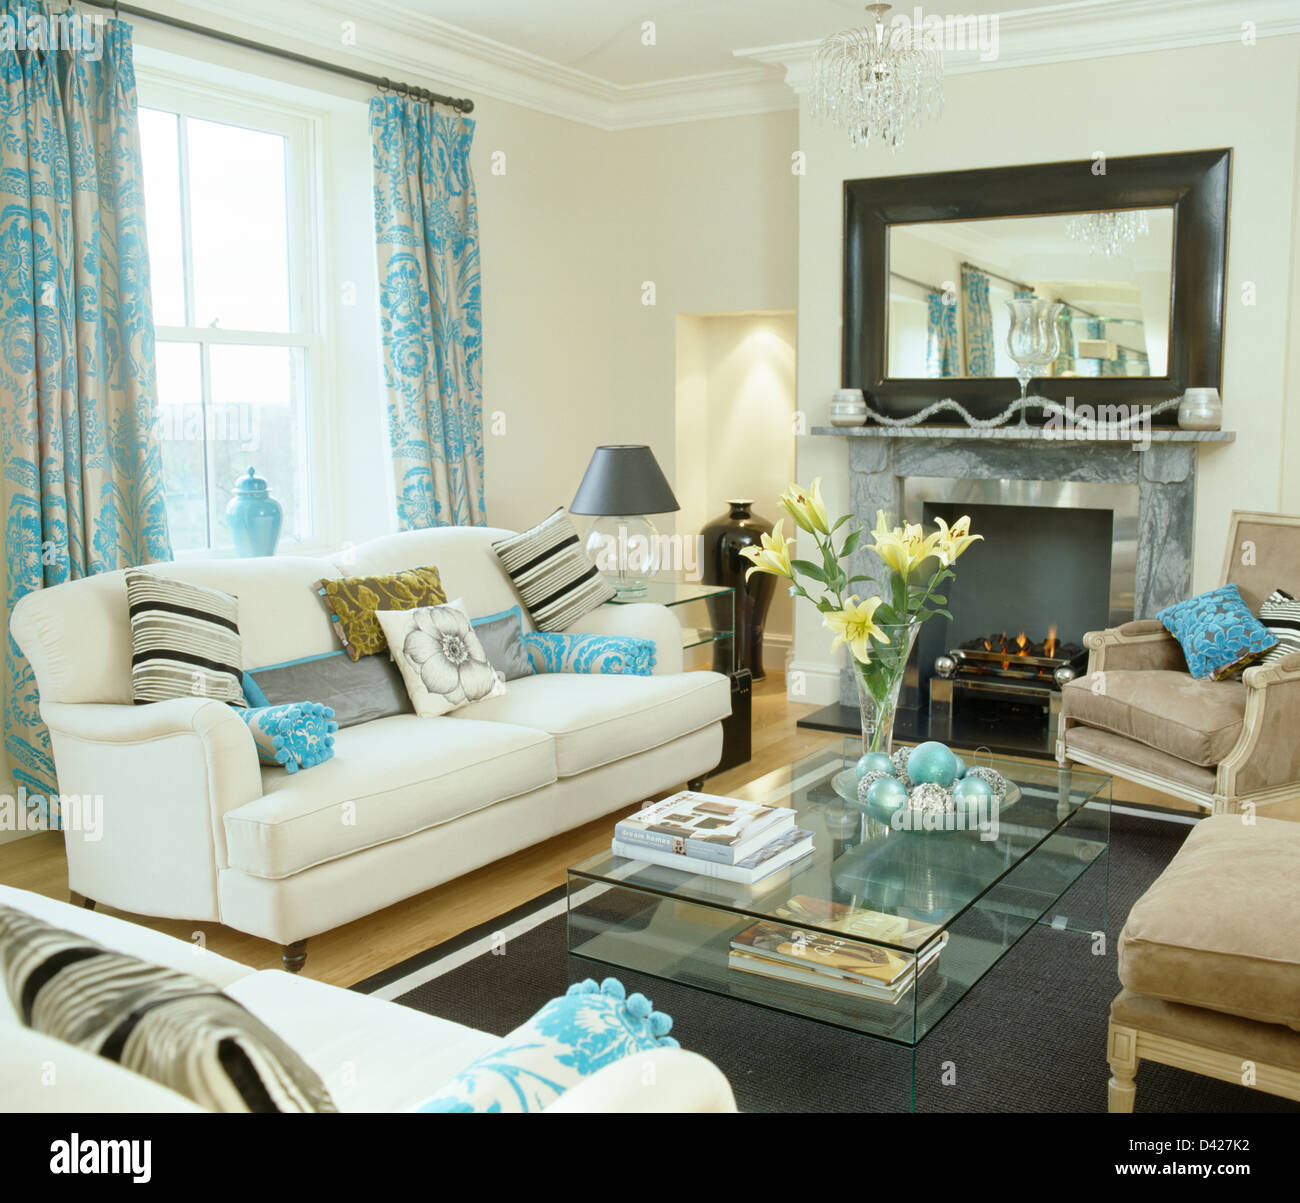 Attractive Patterned Turquoise Curtains On Window Above White Sofa In White Living Room  With Large Mirror Above Fireplace